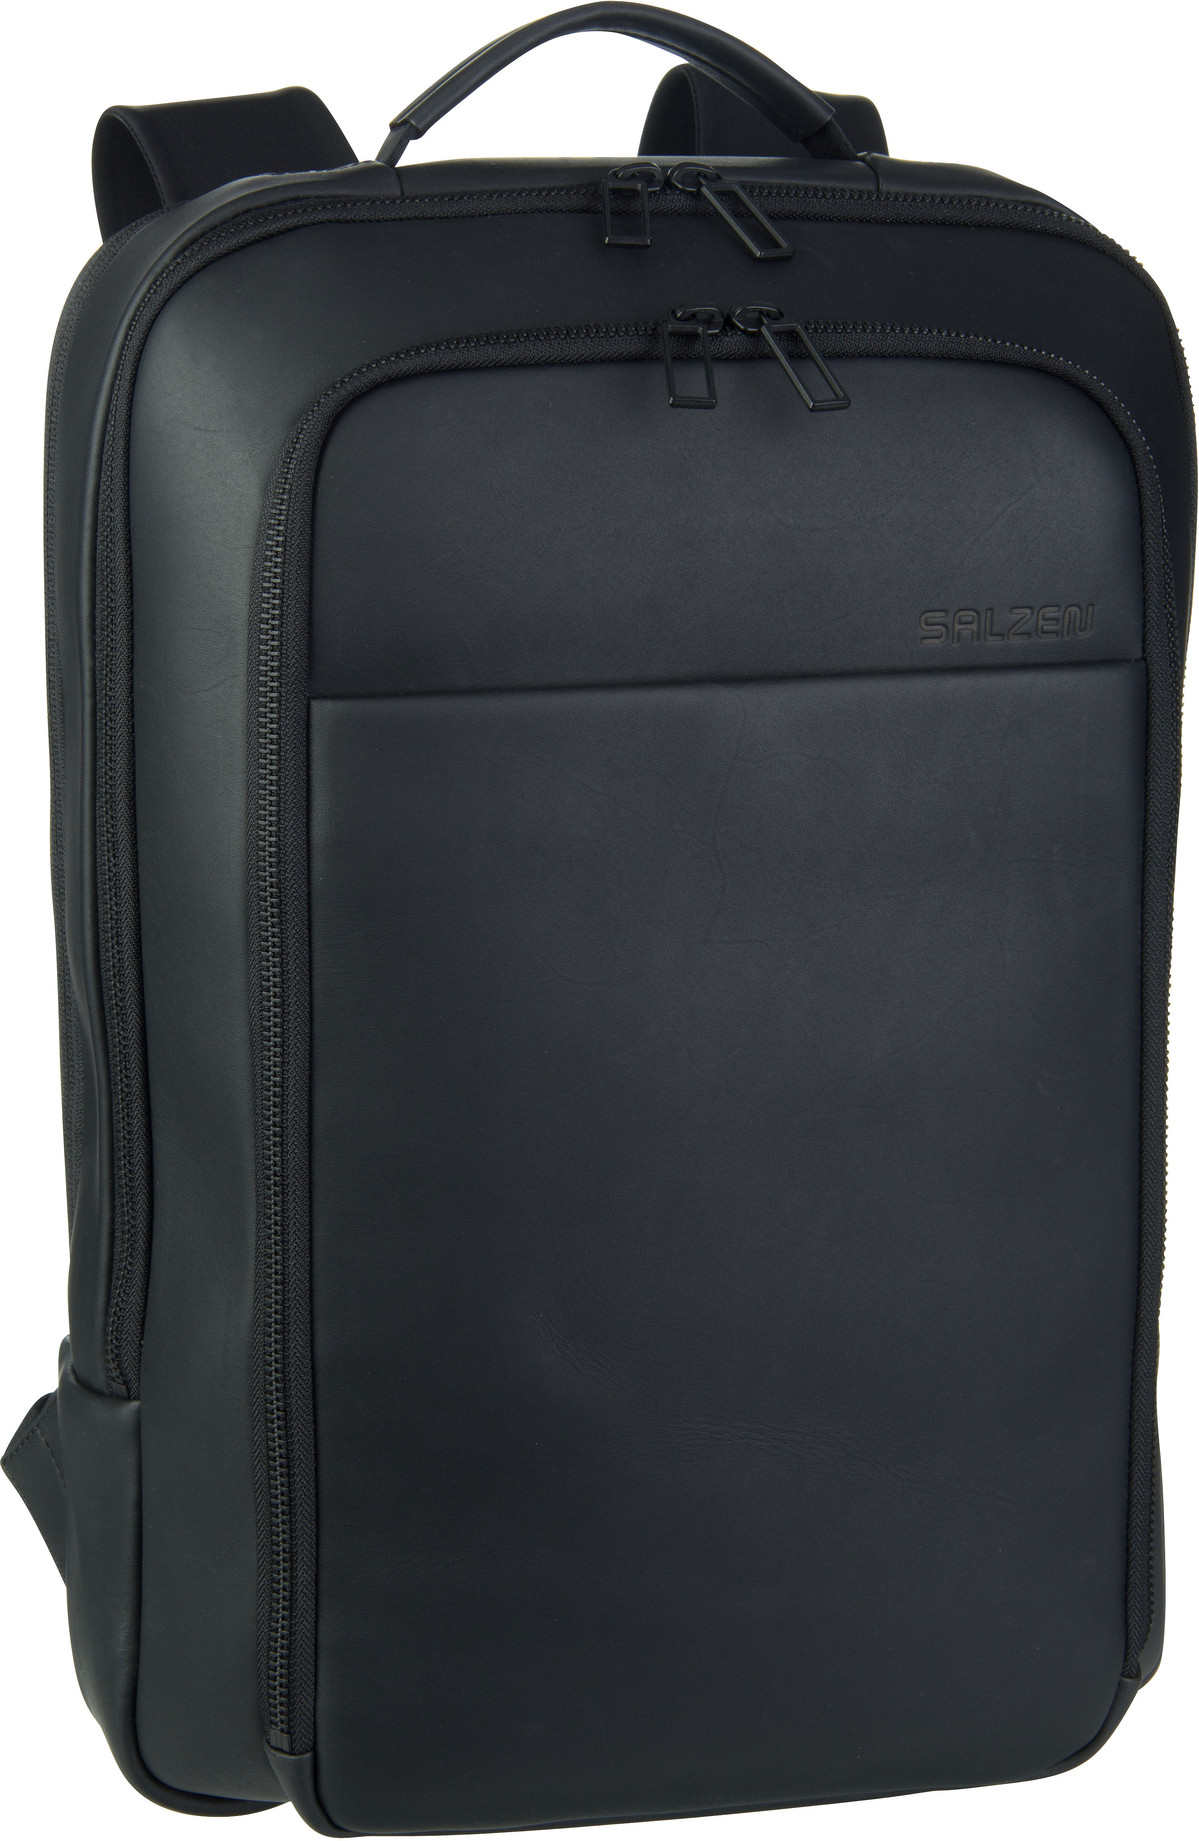 Laptoprucksack Originator Leather Total Black (17 Liter)